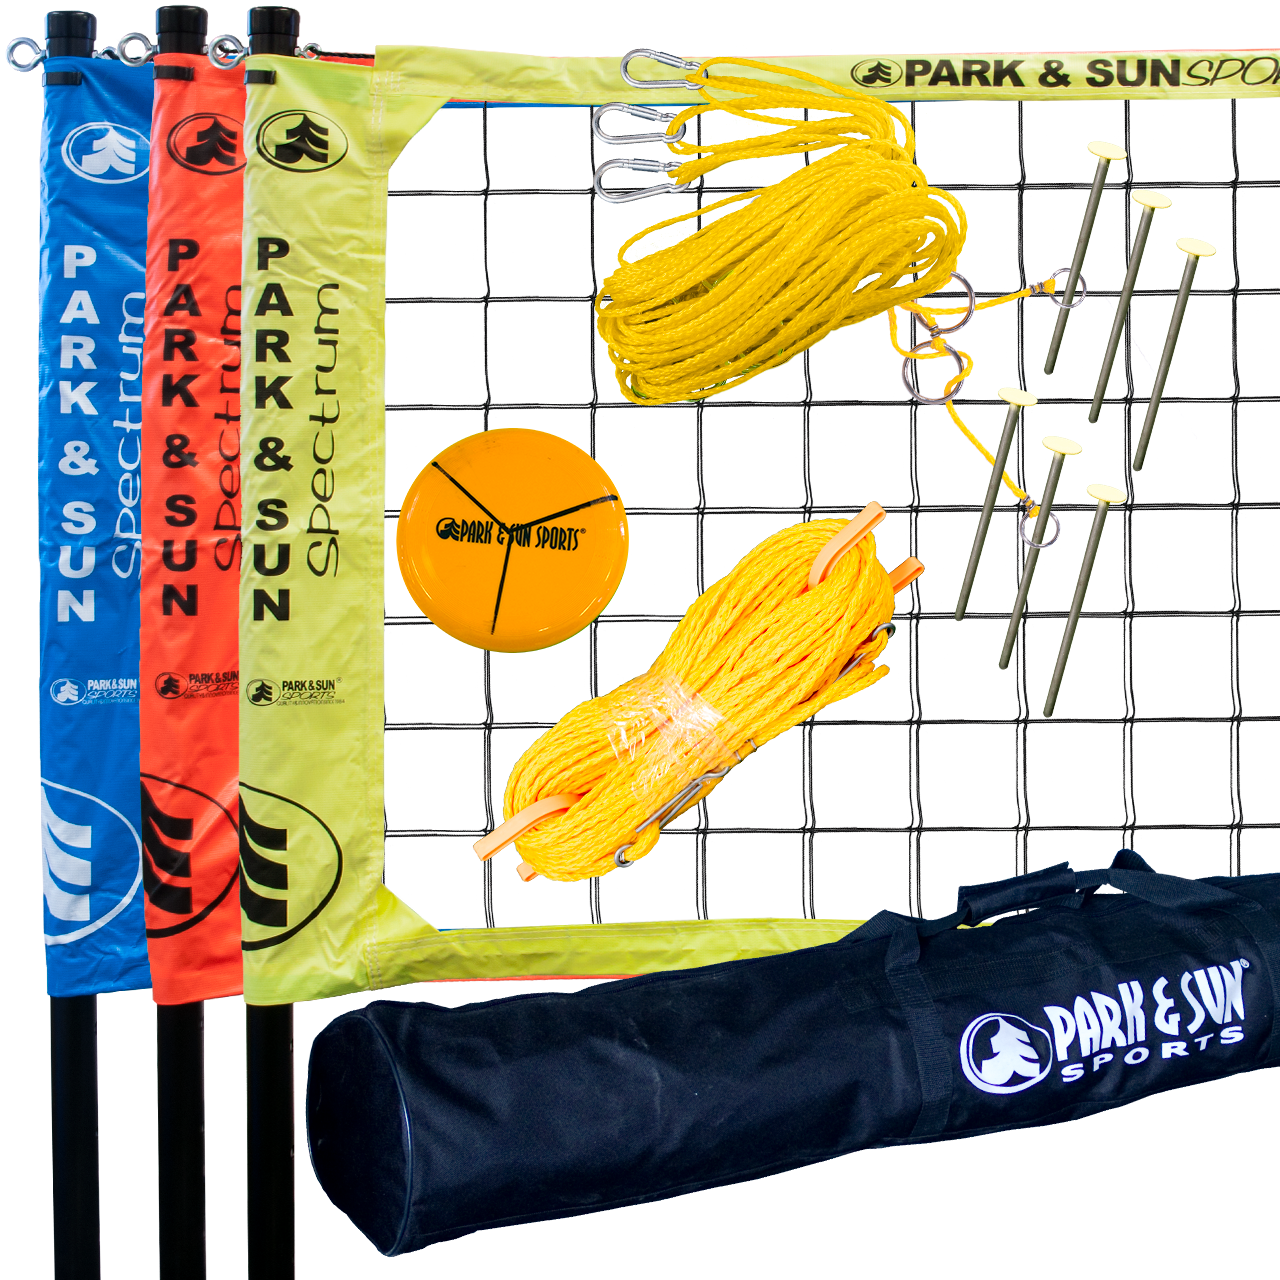 Park and Sports TRIBALL-PRO Product Layout